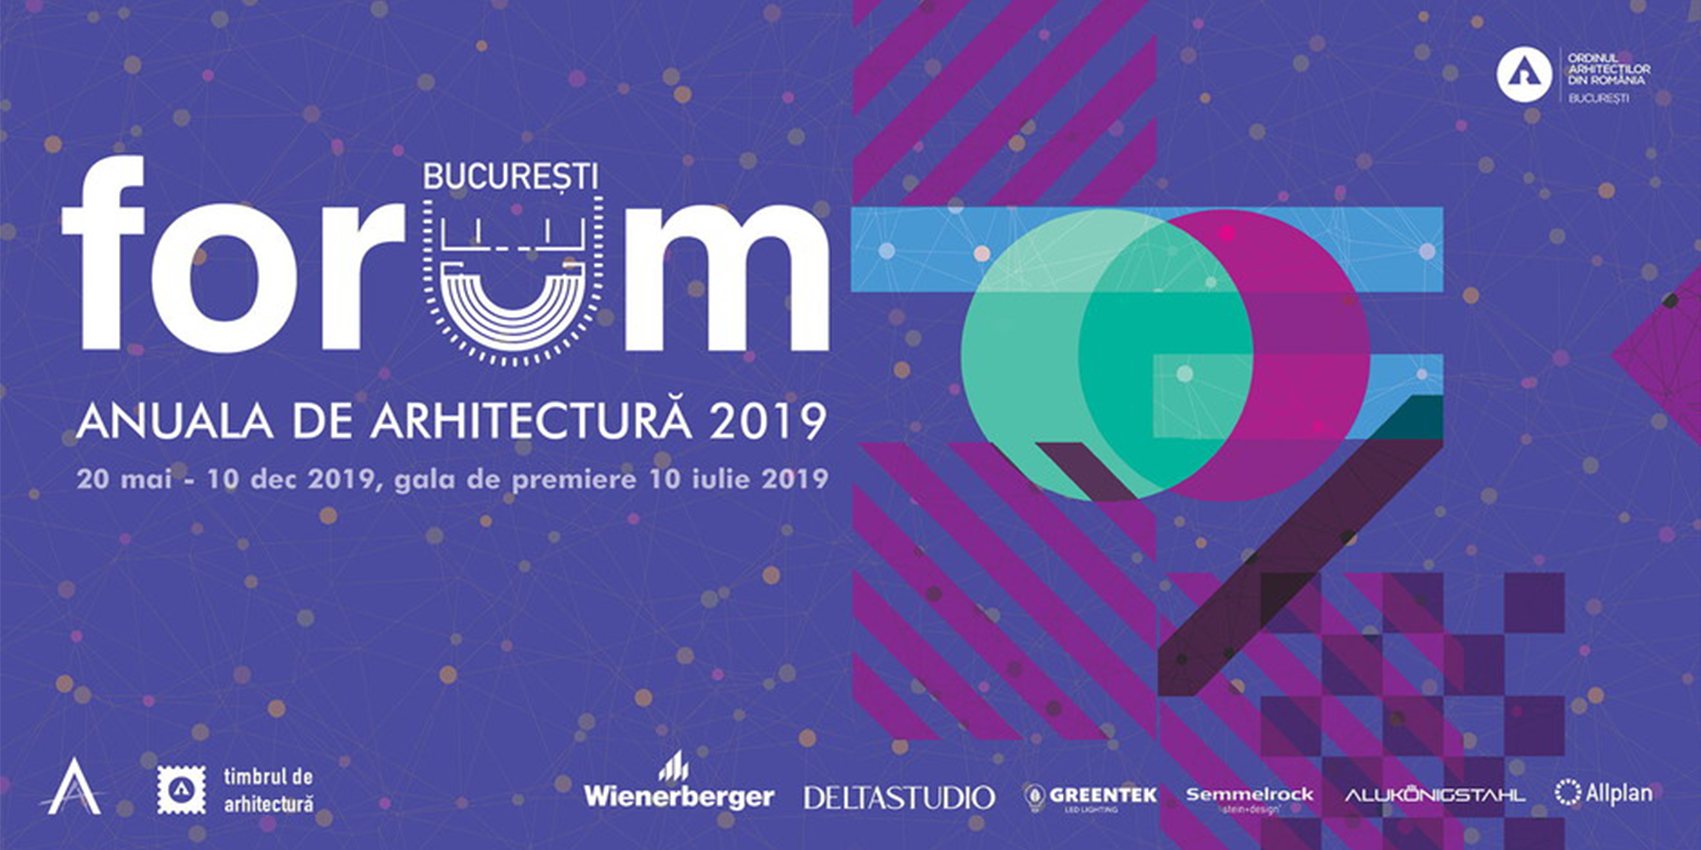 DAAA projects selected for The Bucharest Architecture Annual / Anuala de Arhitectură București 2019 - DAAA projects will be presented in AAB 2019 exhibition in the Public Architecture category, starting from July 10.More details coming soon!